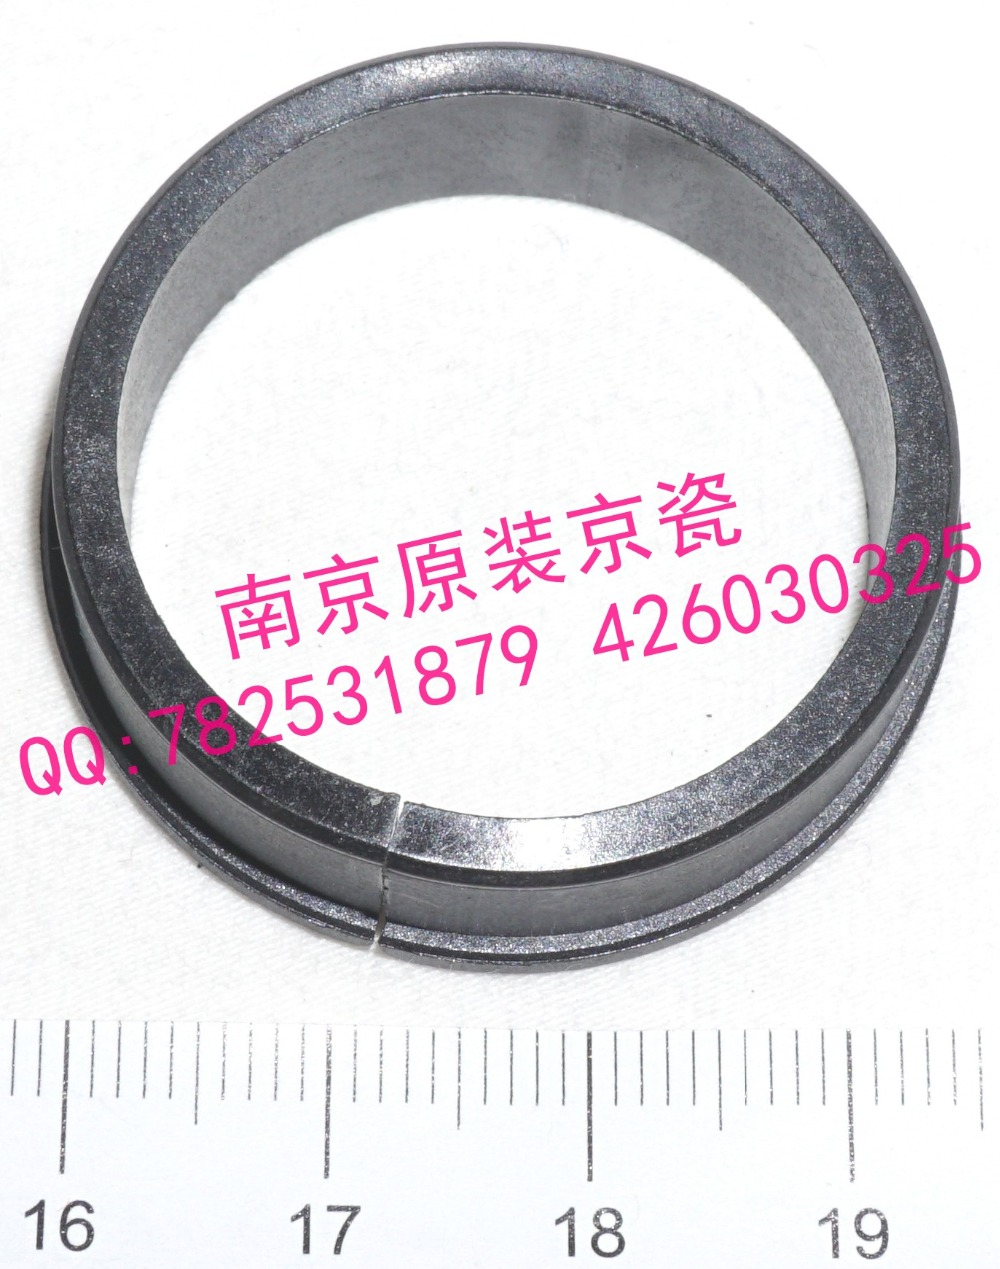 New Original Kyocera 302F925660 BUSH HEAT ROLLER for:FS-2020D 3925DN 4020DN 3040MFP 3140MFP new original kyocera fuser 302j193050 fk 350 e for fs 3920dn 4020dn 3040mfp 3140mfp